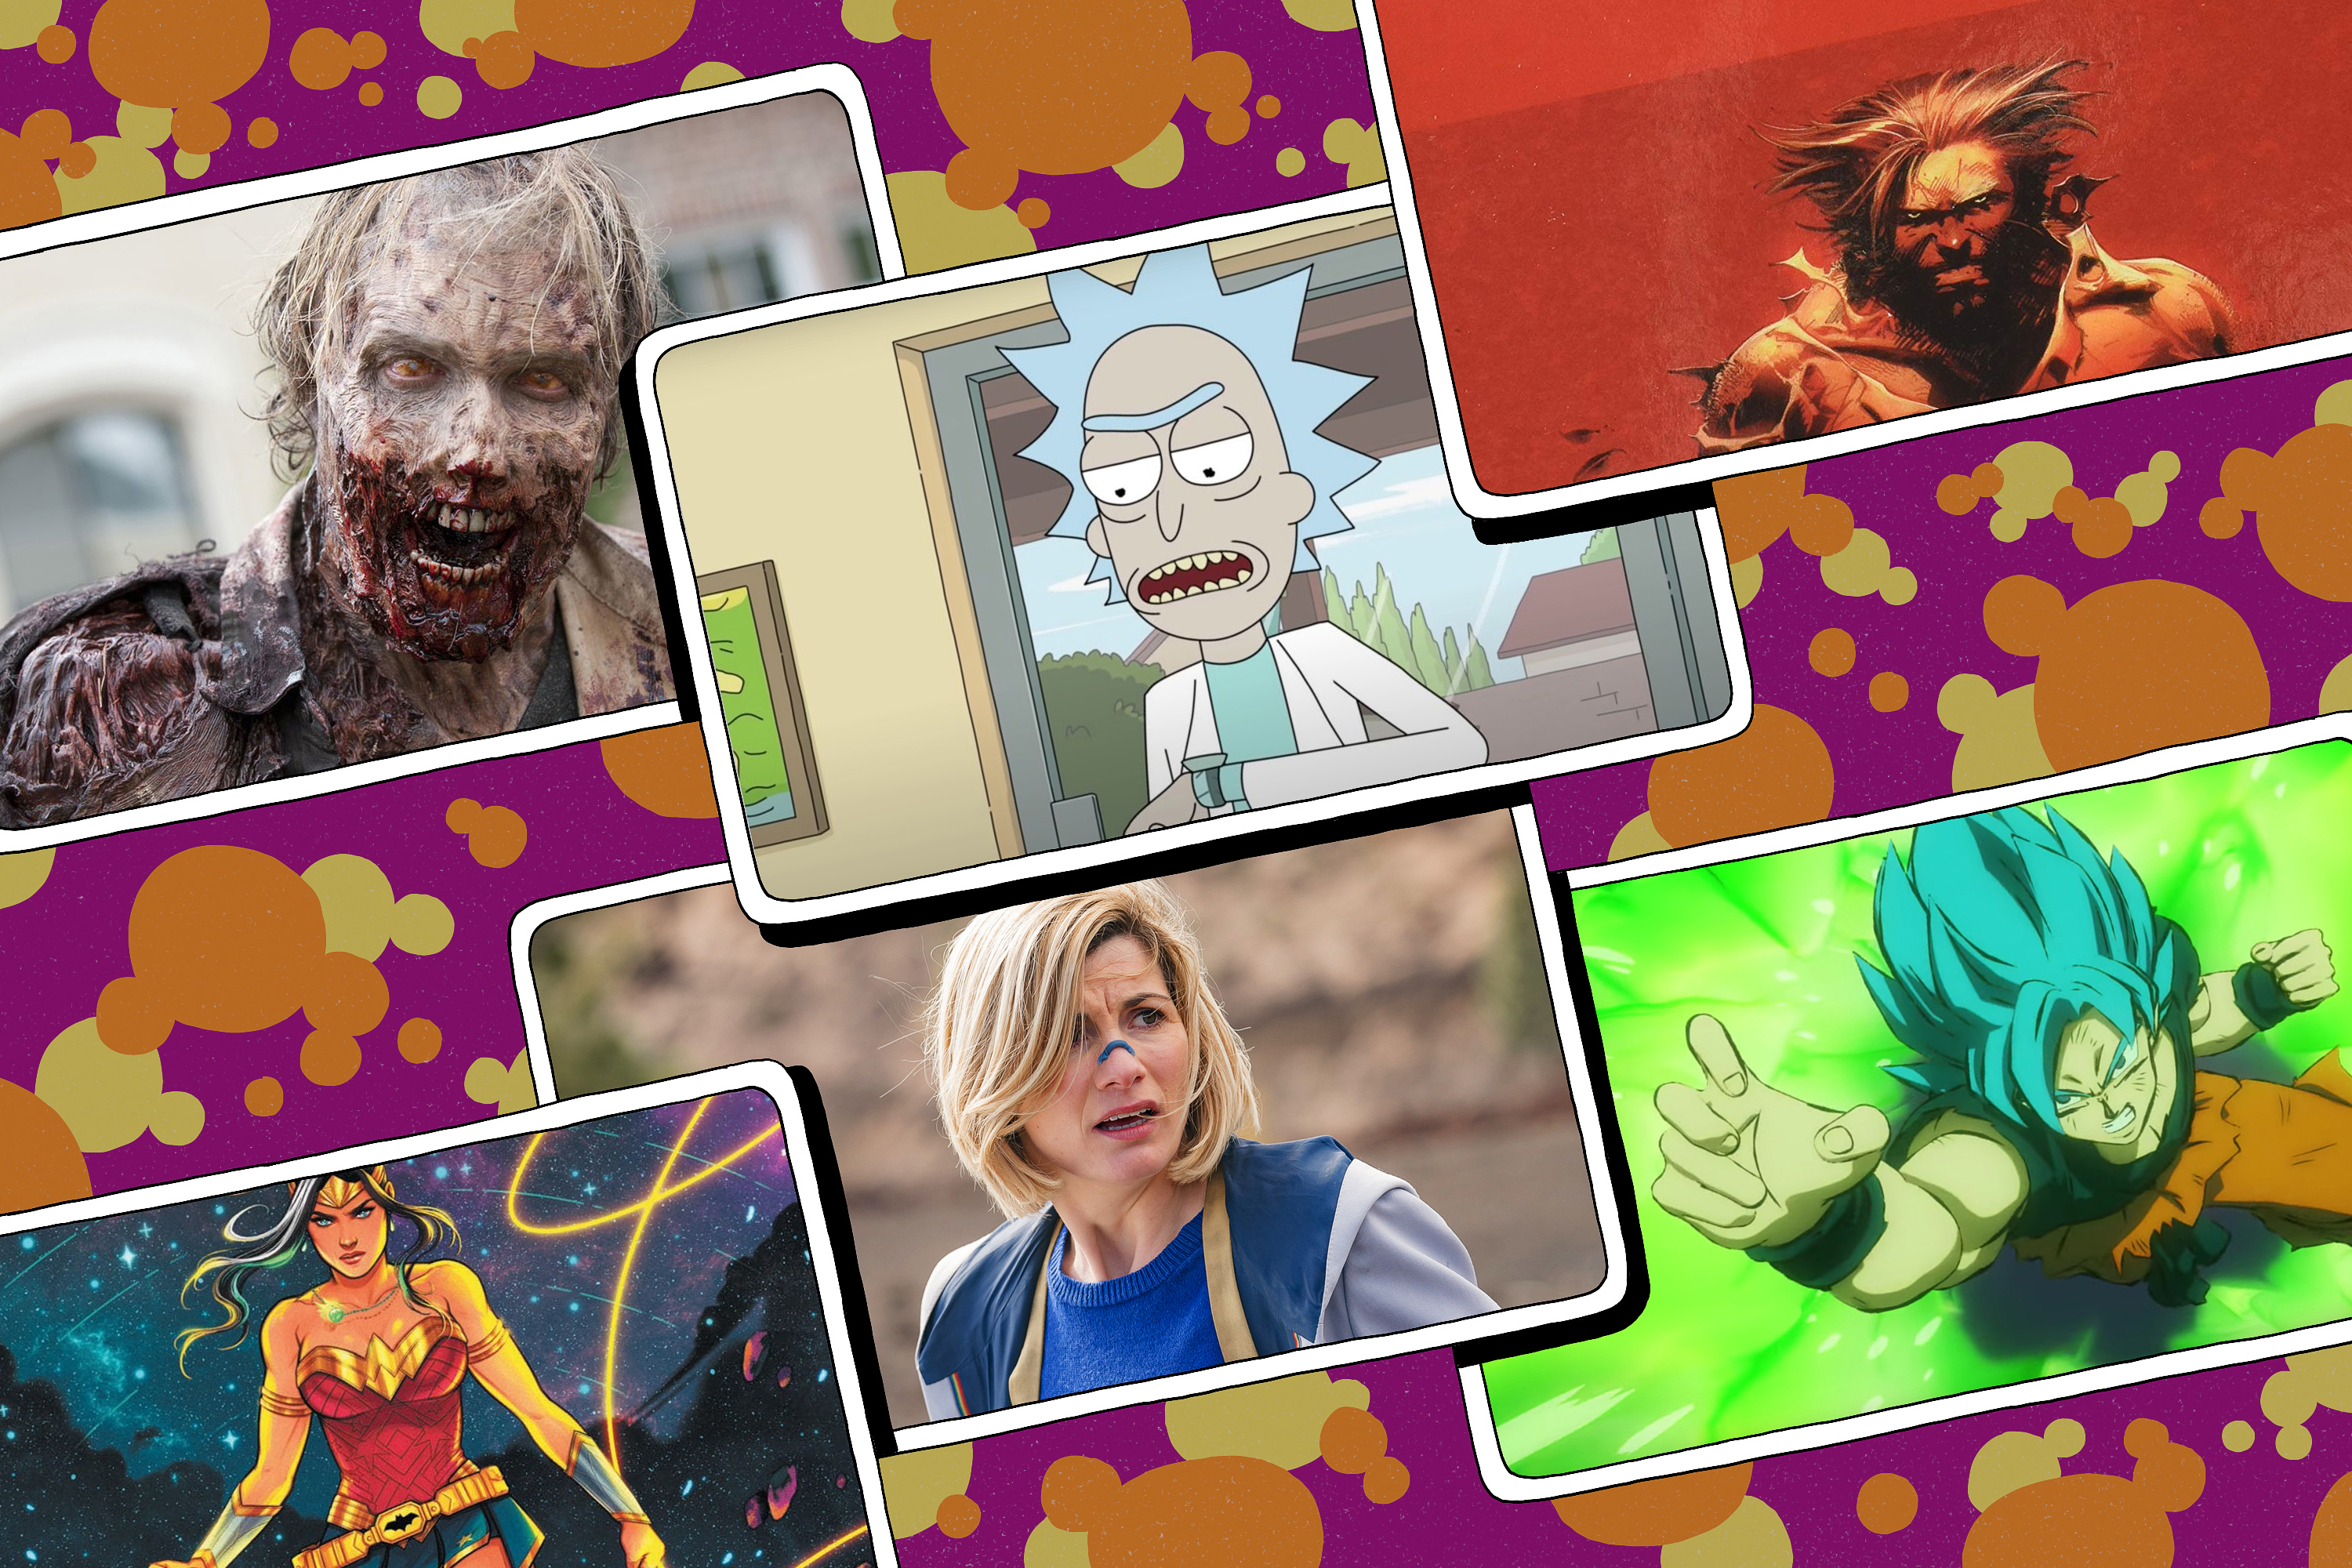 Illustrated grid featuring six images from various movies, tv shows, comics and anime